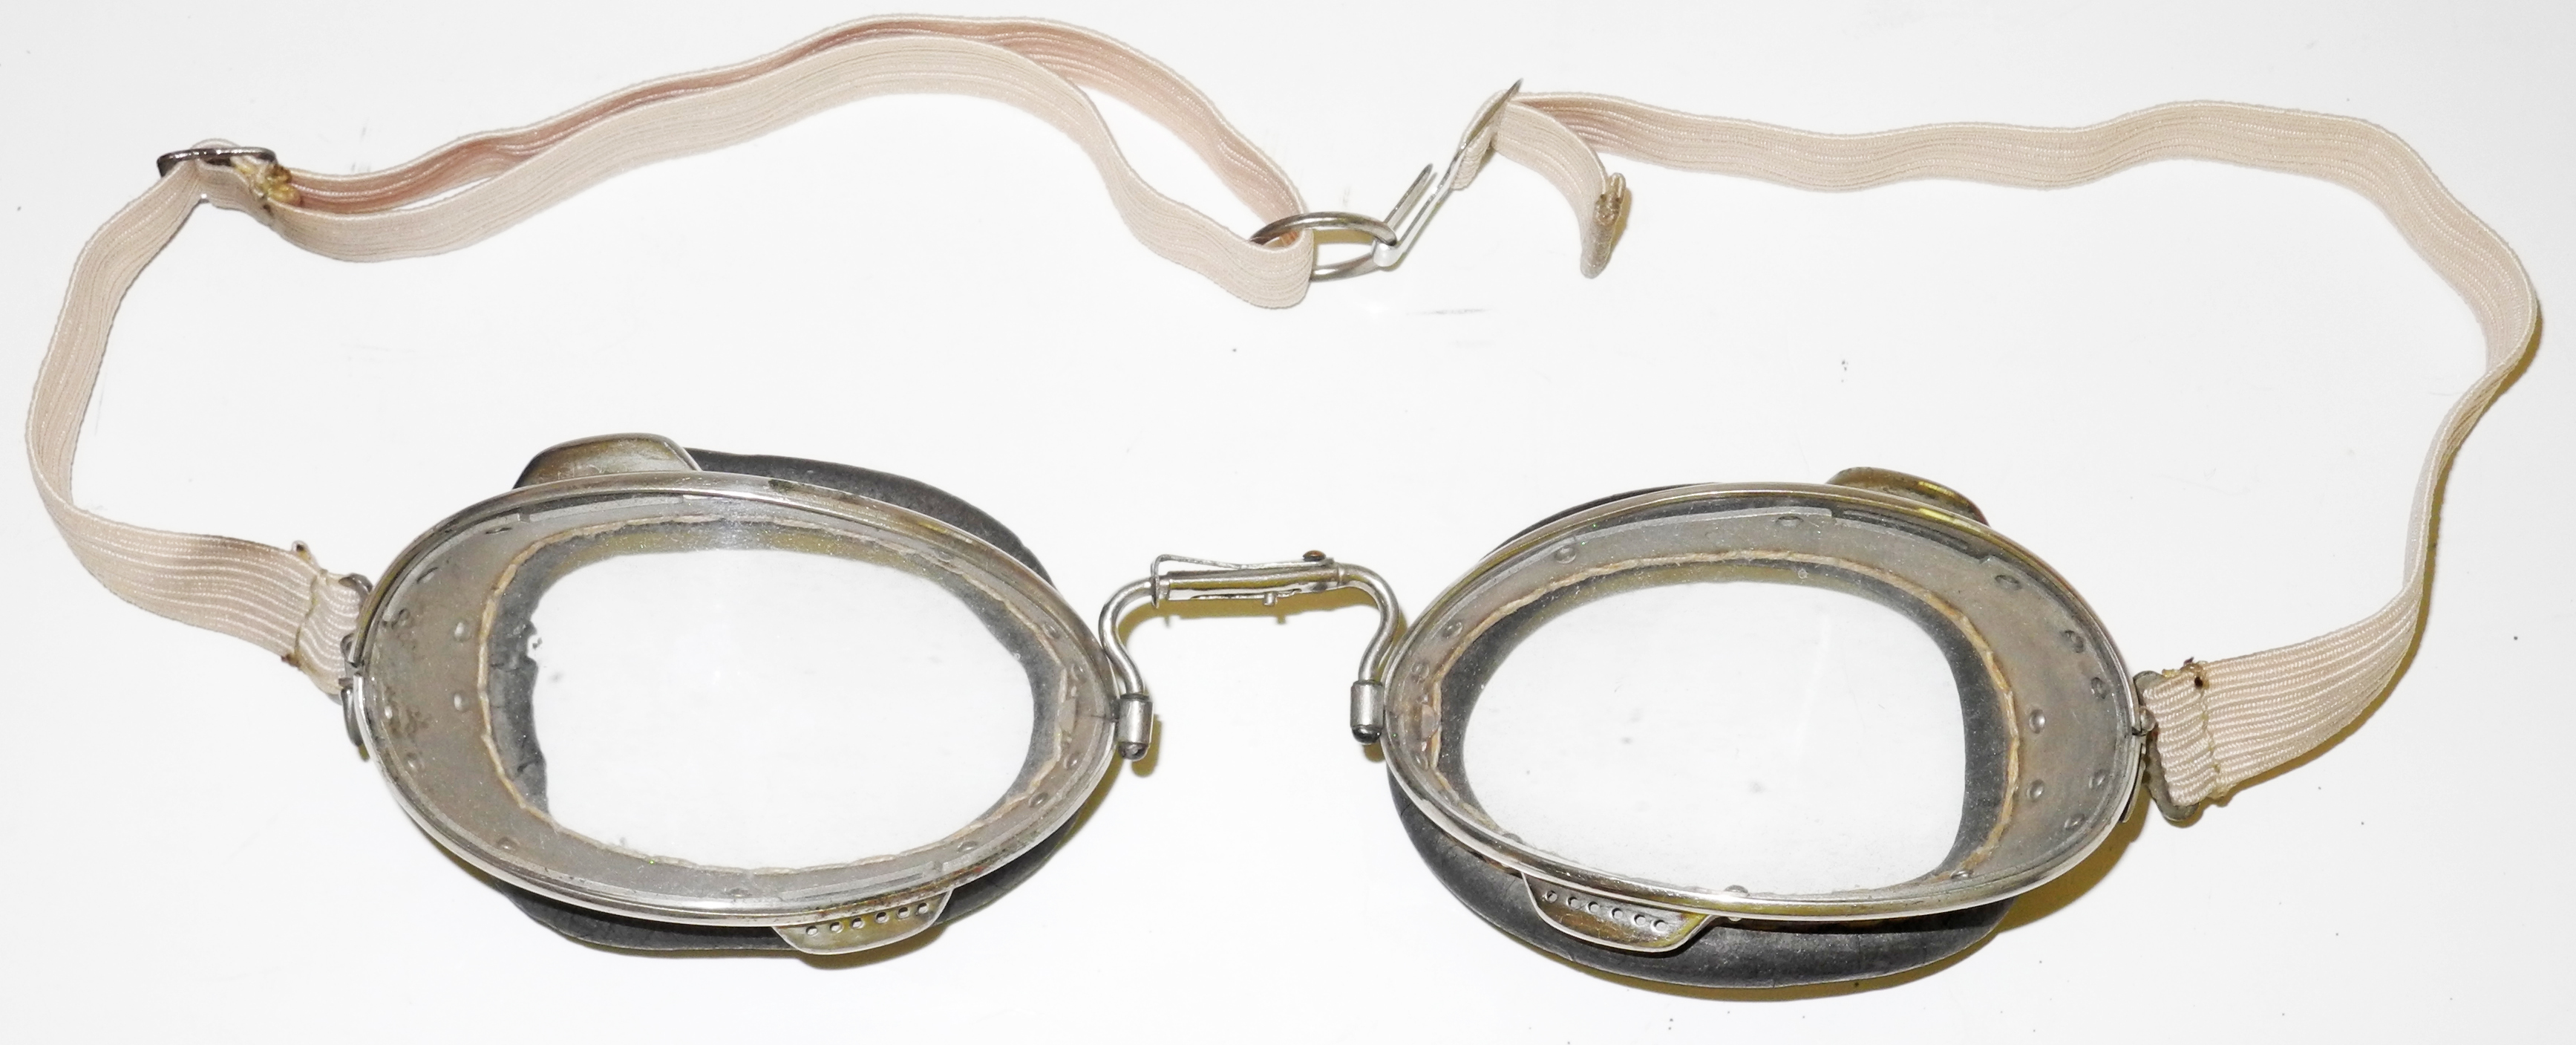 Googlette No. 3 French WWI goggles